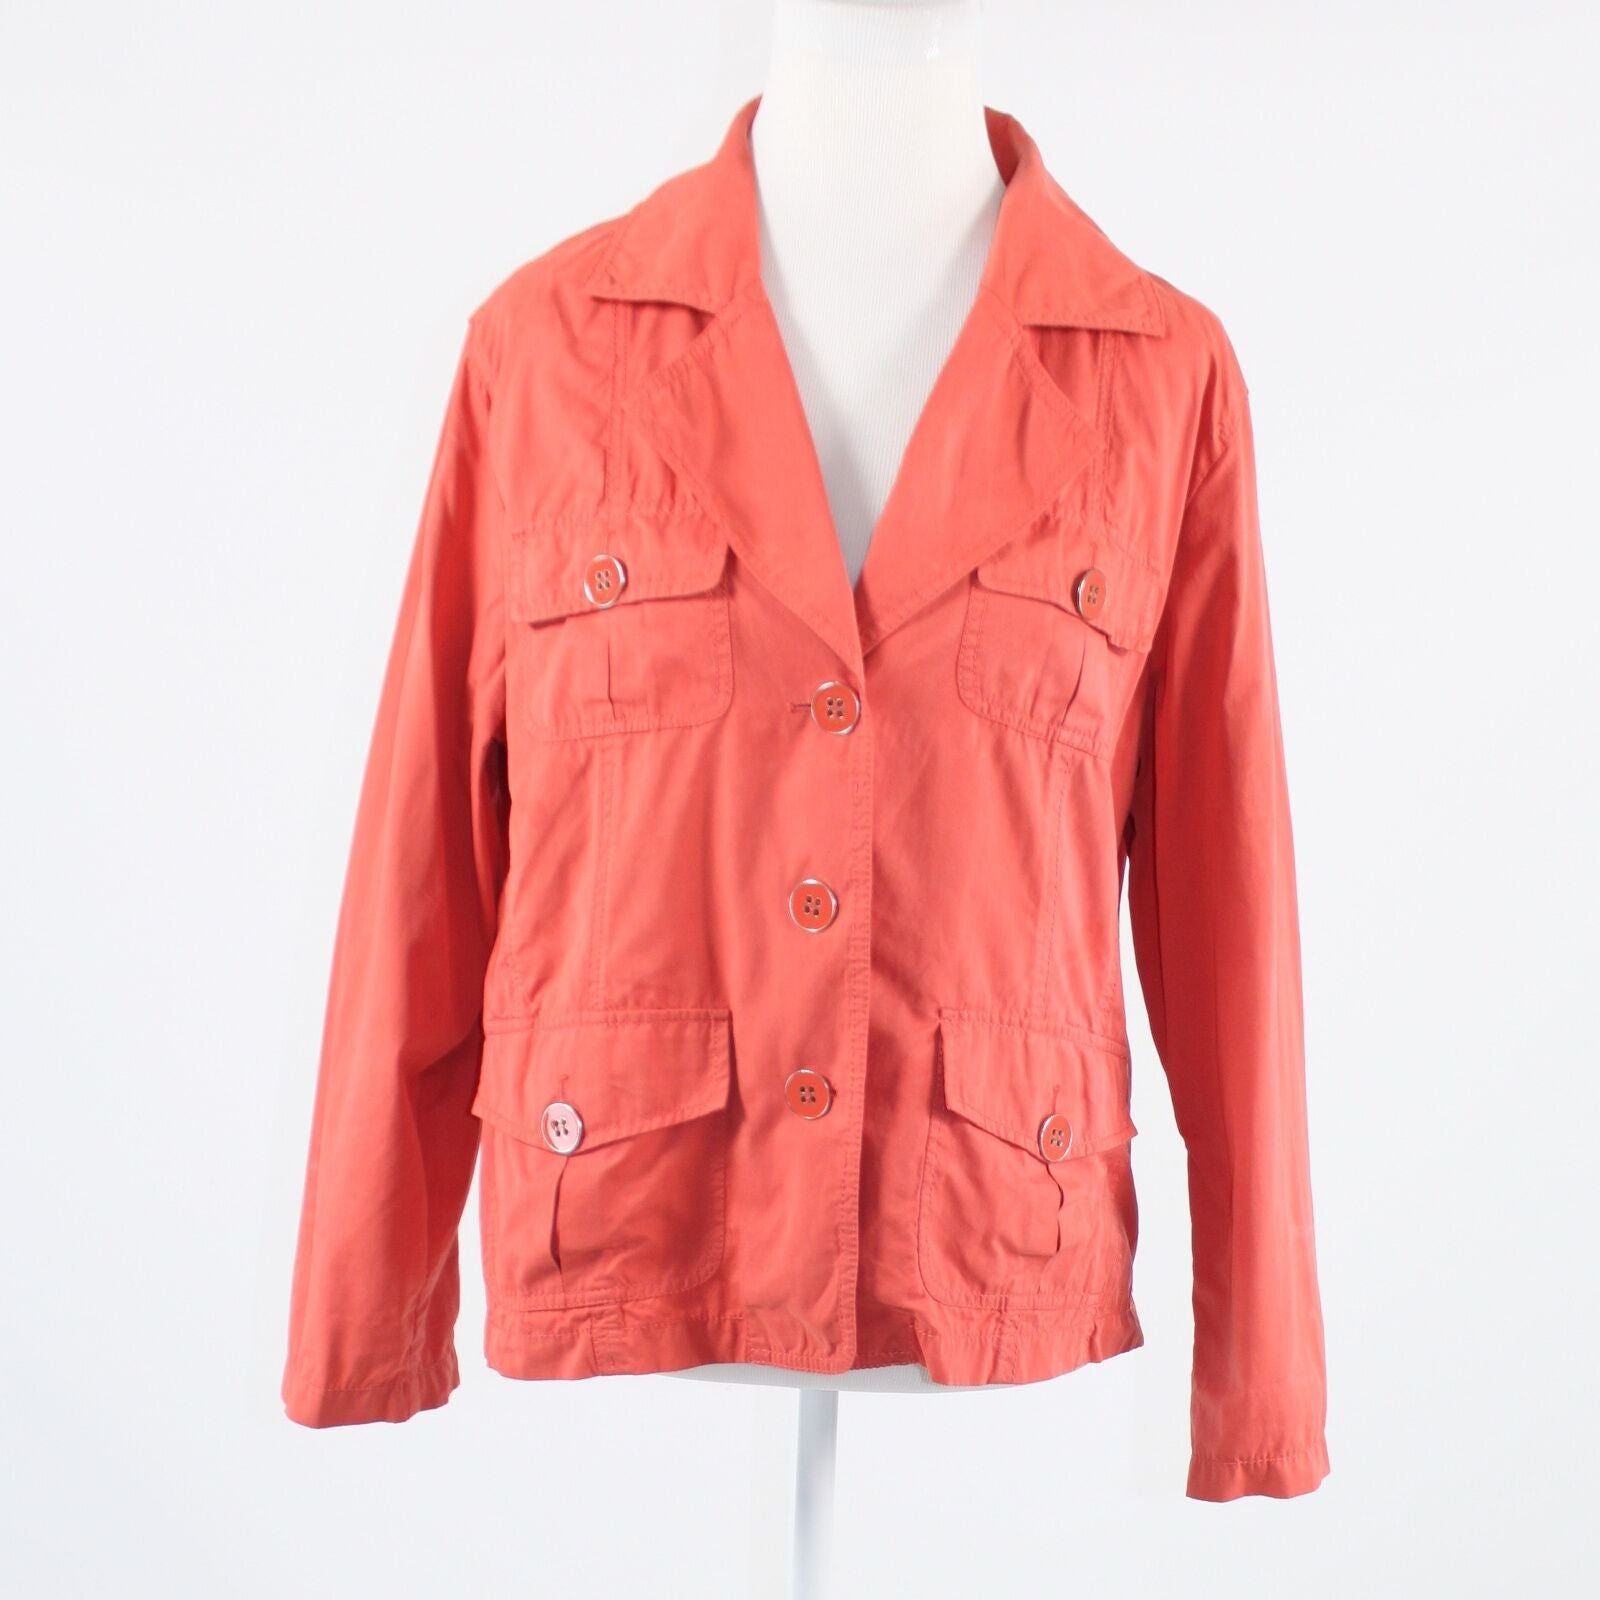 Coral orange brushed texture CHICO'S long sleeve button down jacket 3 L 16